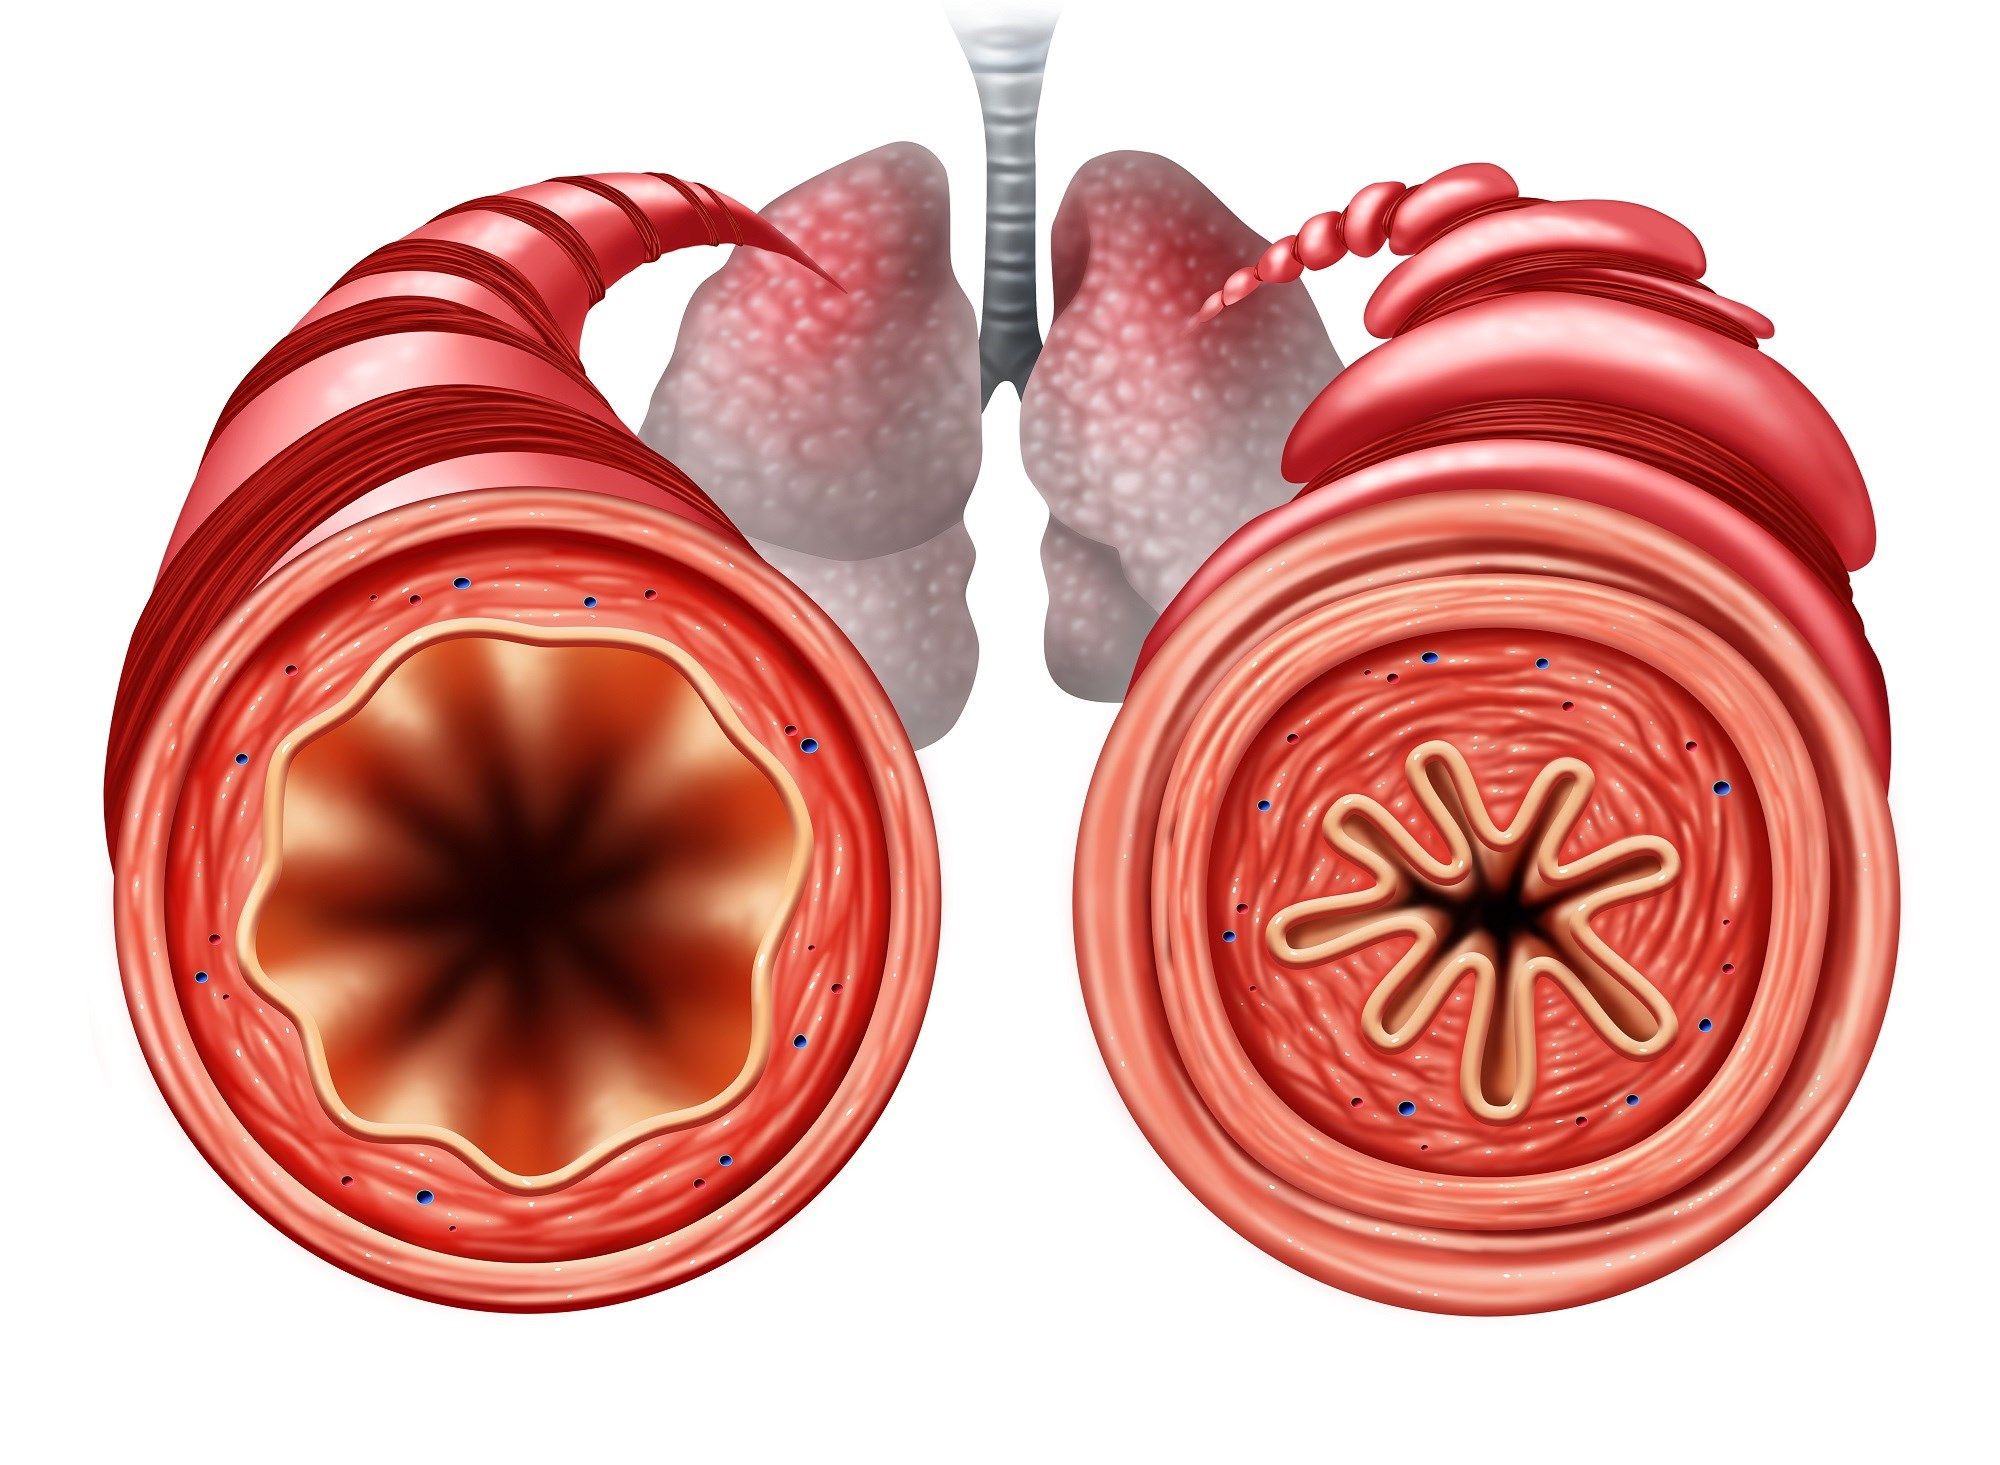 Gas Trapping Improved With Bronchial Thermoplasty in Severe Asthma